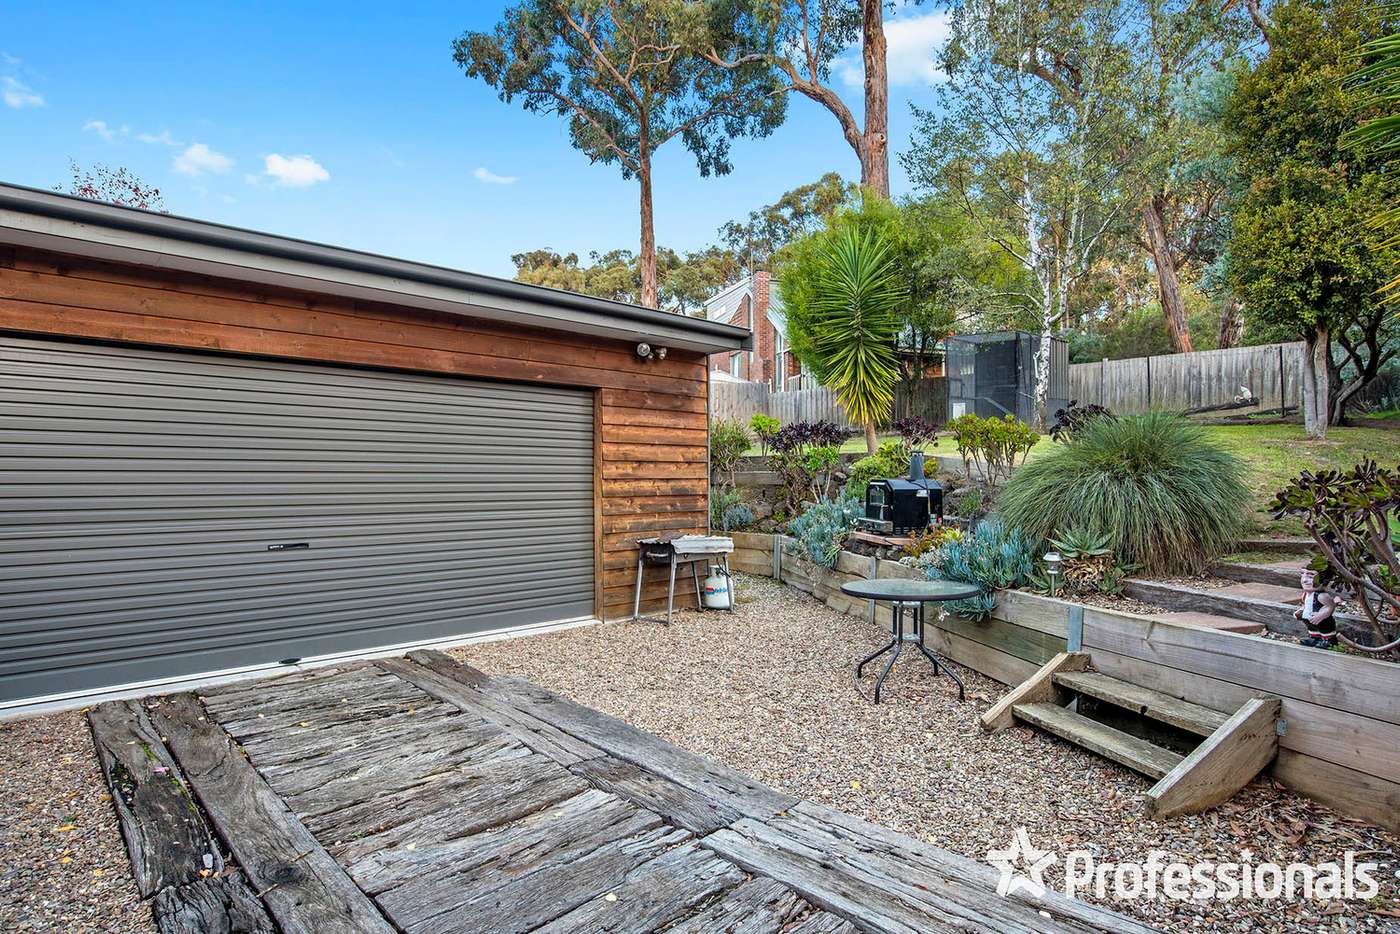 1 Seth Place, Mount Evelyn, VIC 3796 For Sale - Homely